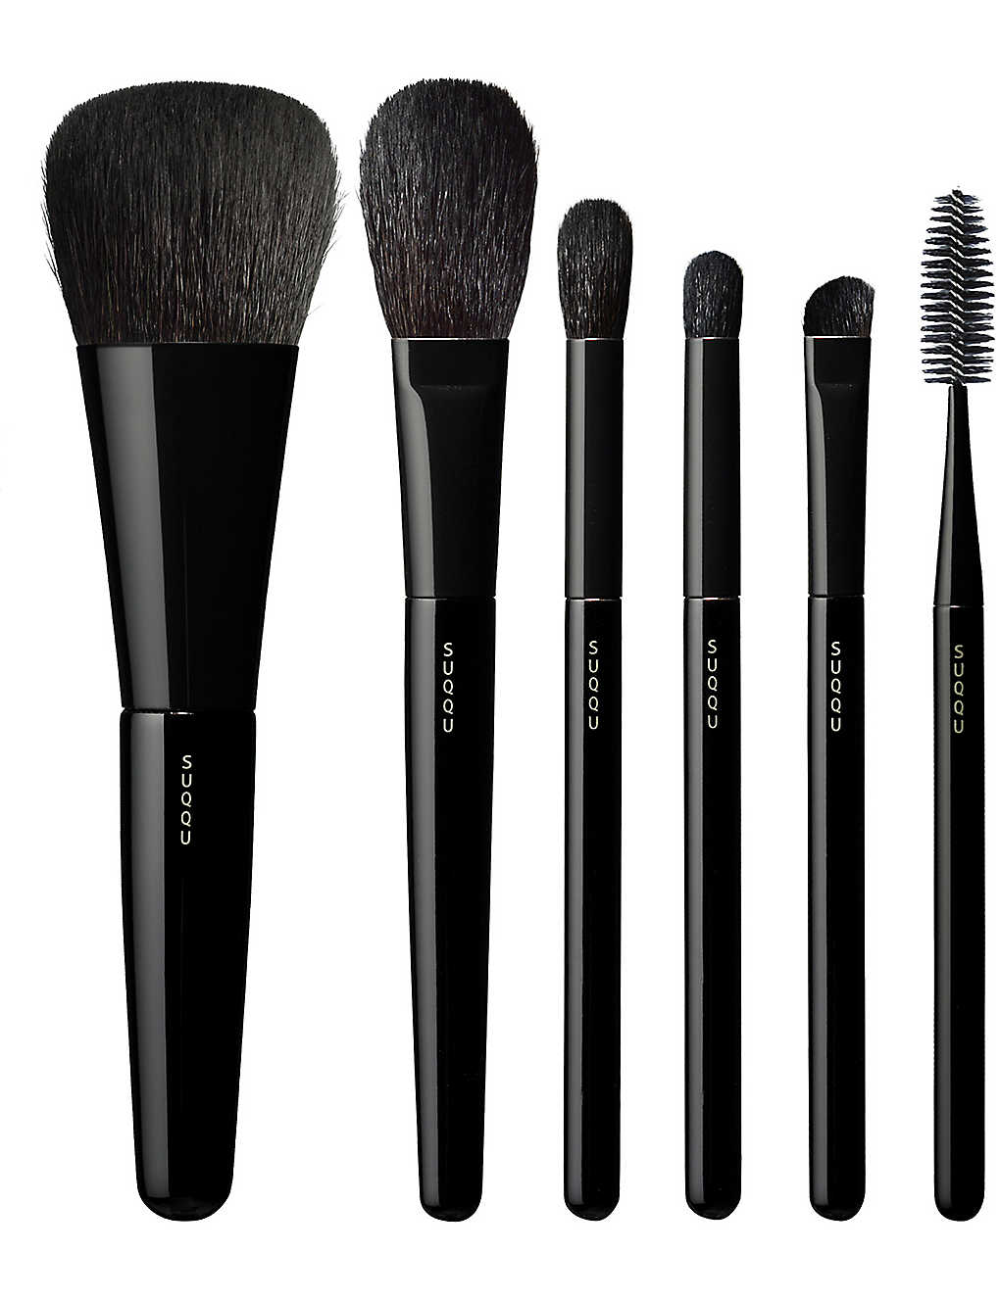 SUQQU Brushes Complete Set (With images) Brush, Makeup